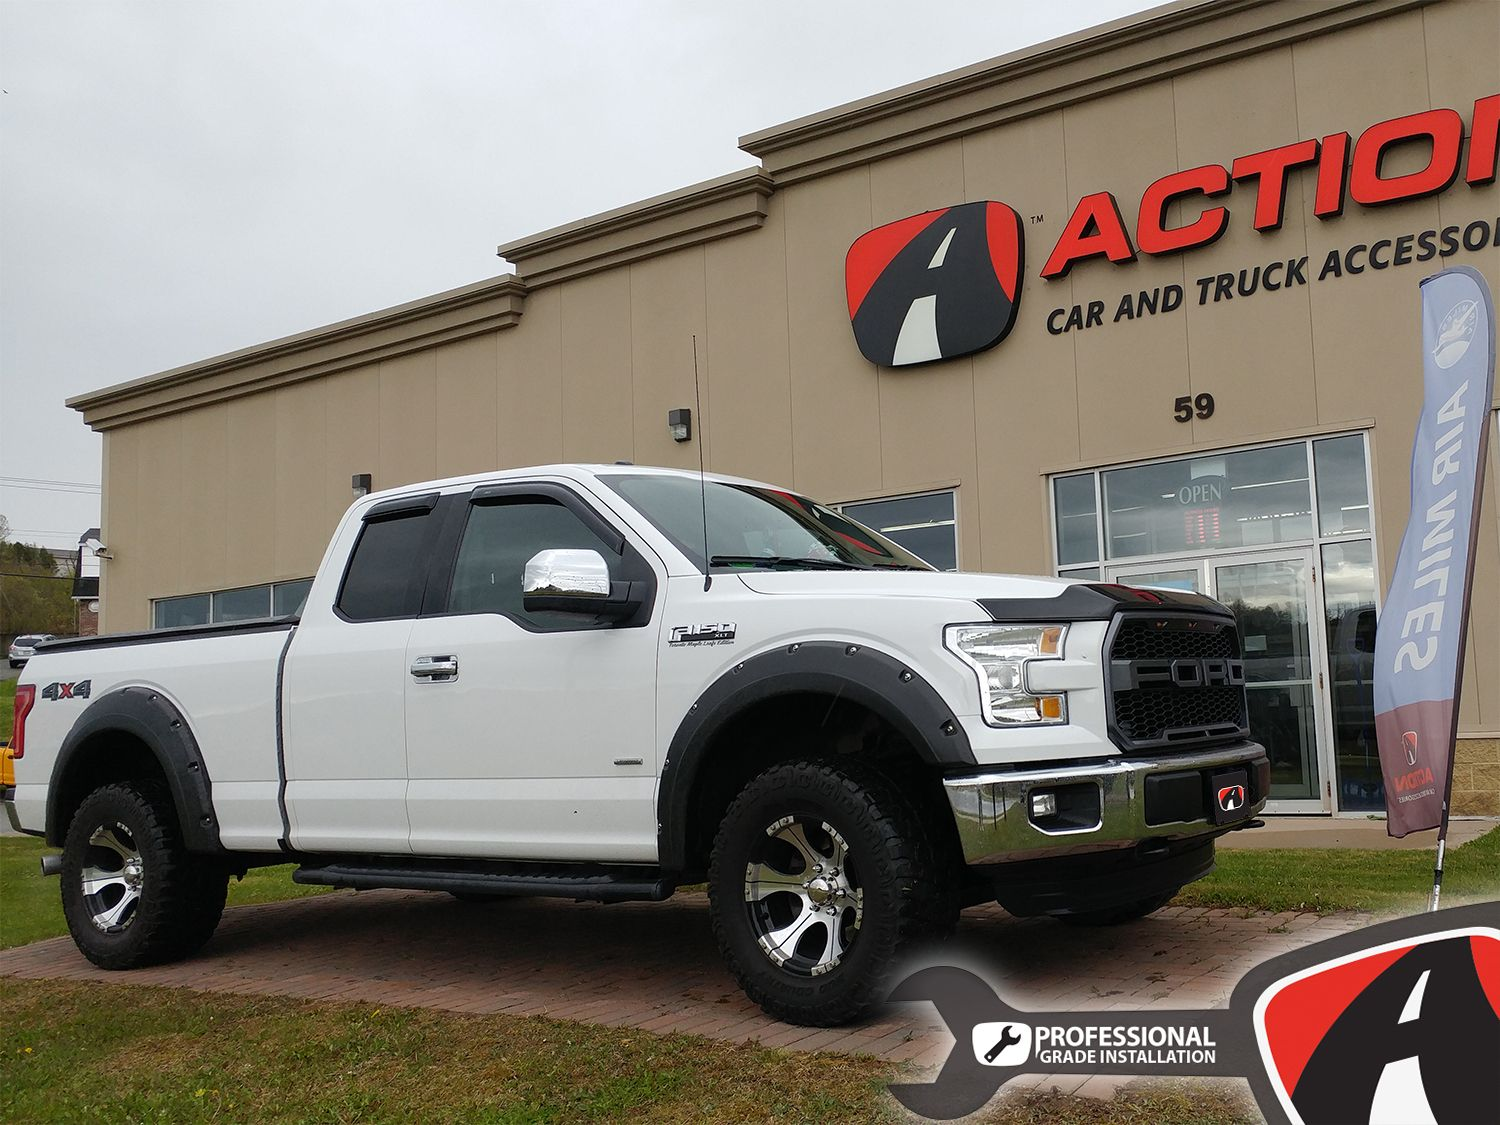 2015 Ford F150 Paramount Raptor Style Grille Avs Aeroskin And